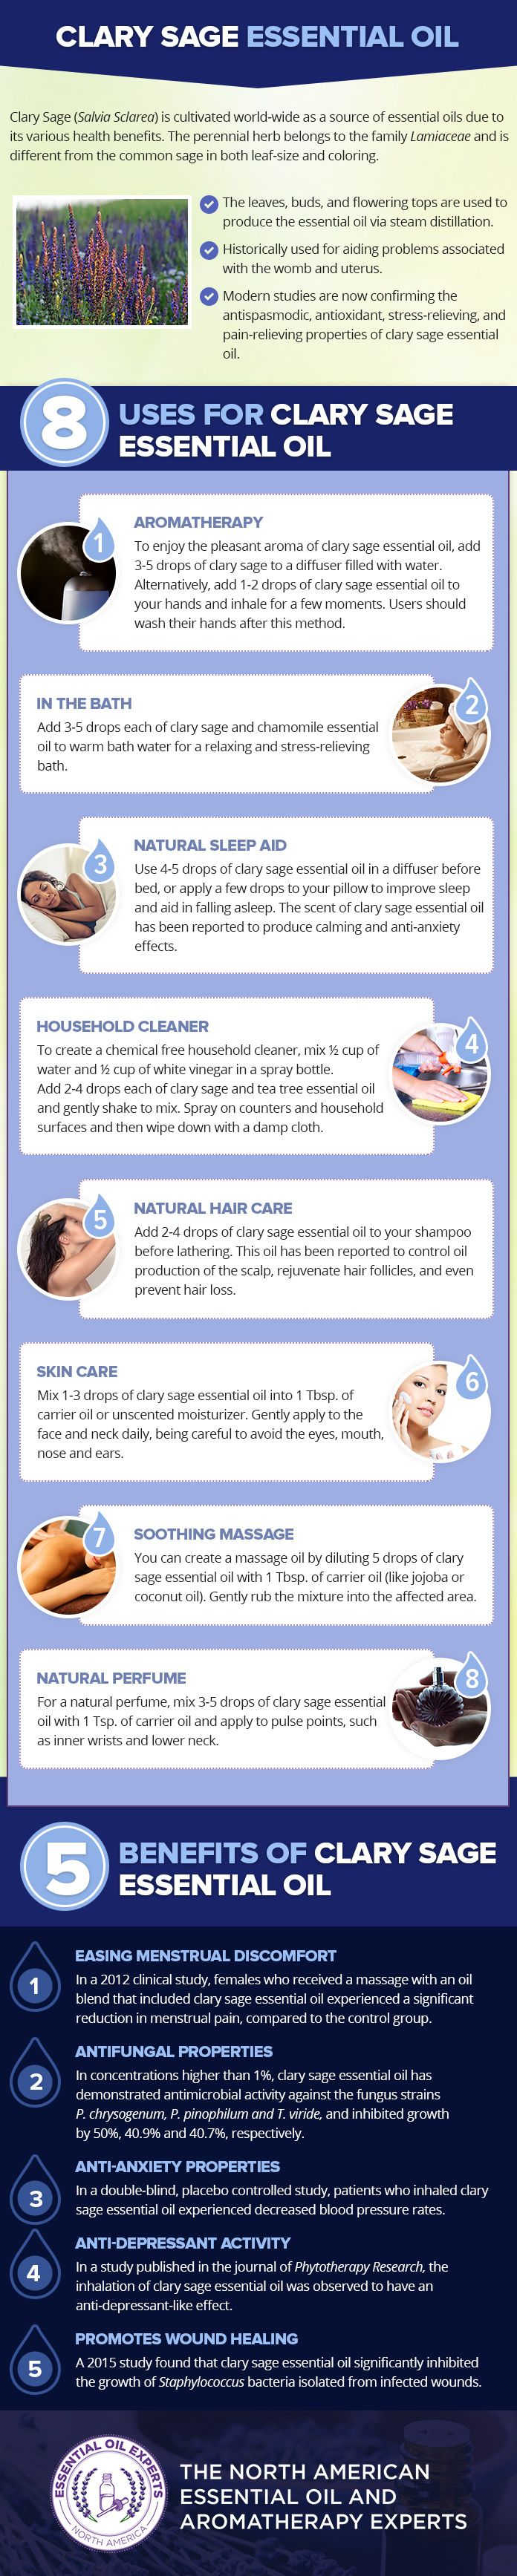 Clary Sage Essential Oil Uses & Benefits